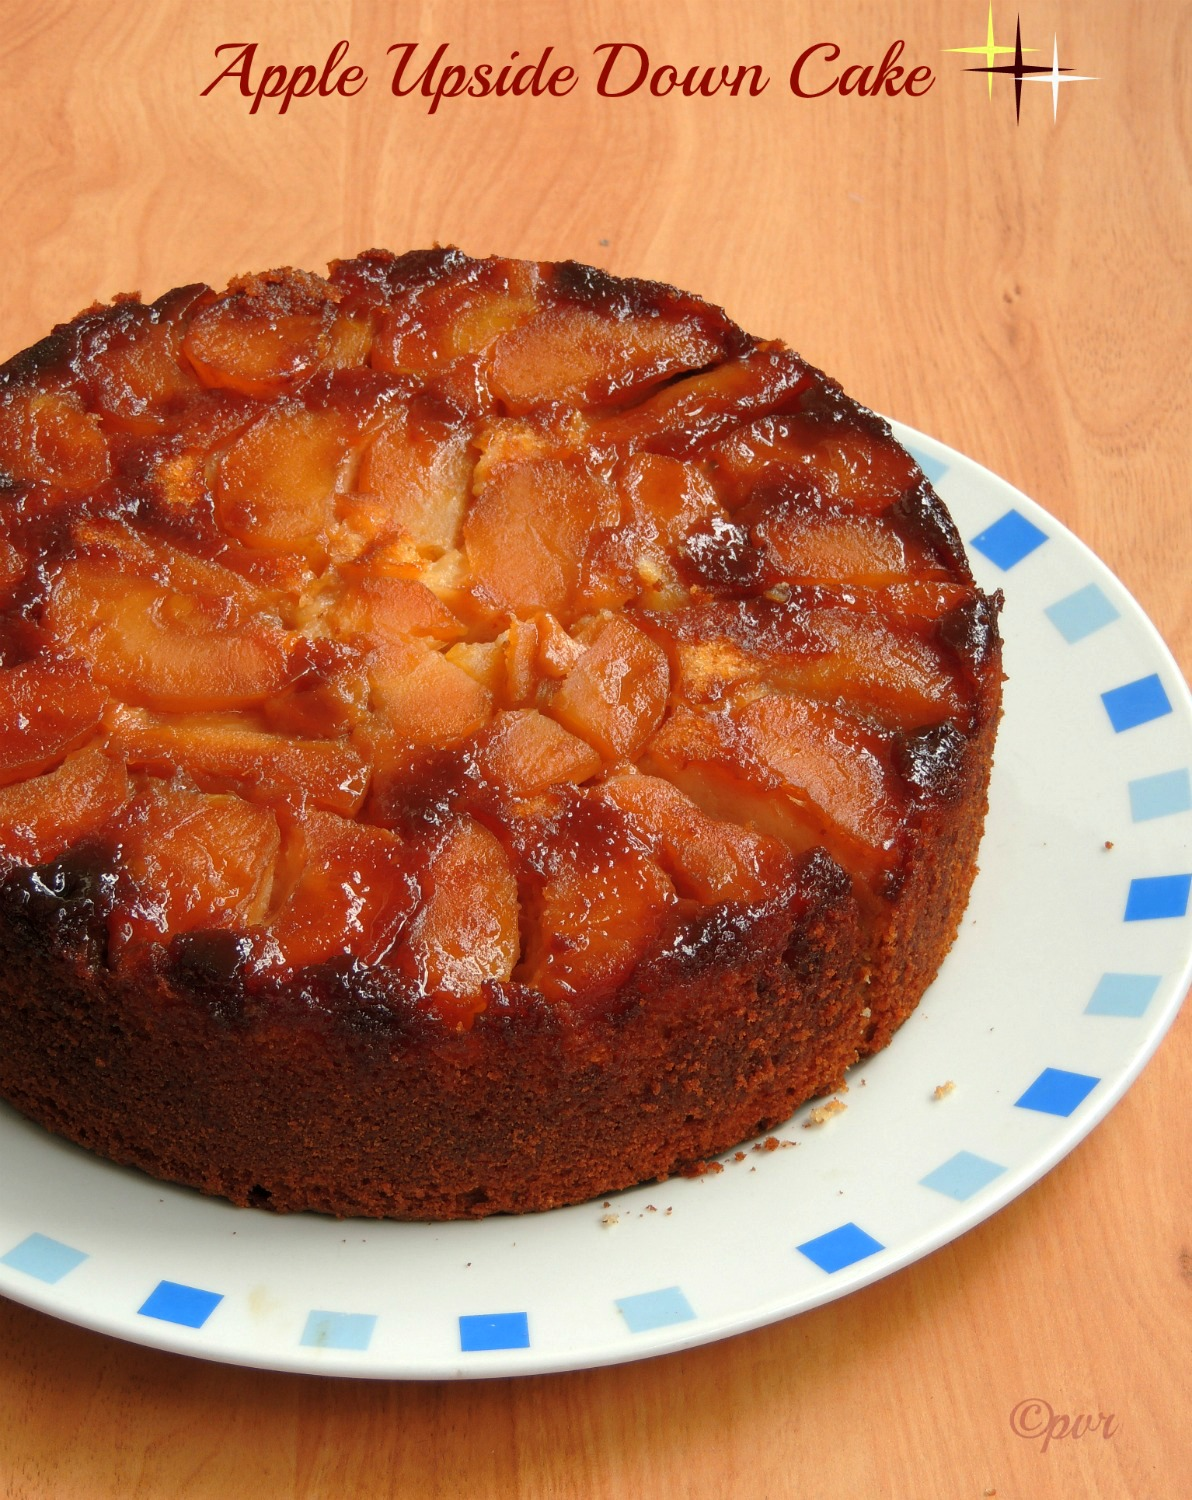 upside down cake s caramel apple upside down cake s peach upside down ...